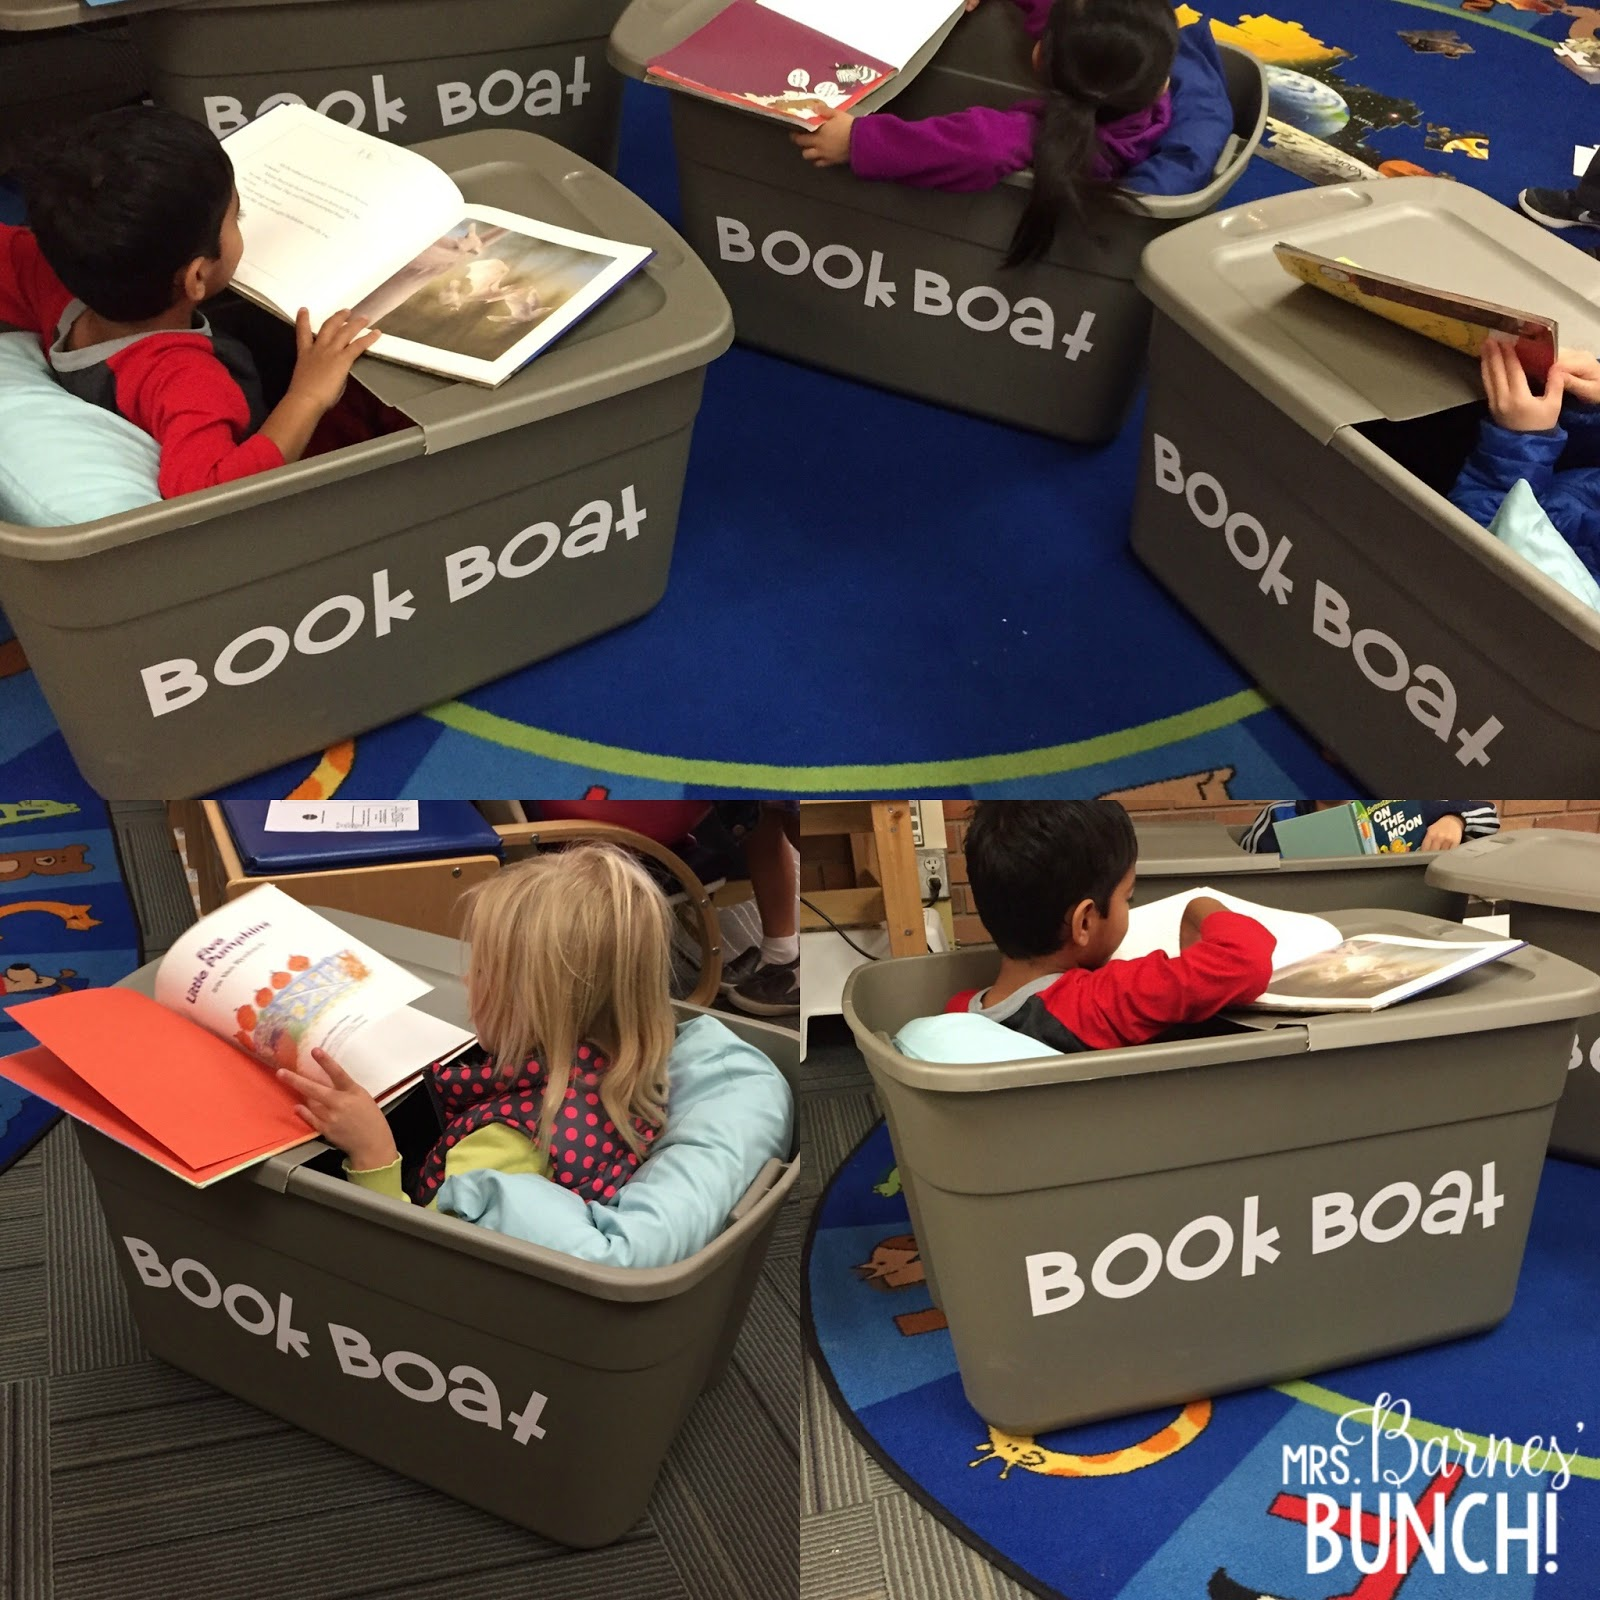 Mrs Barnes Bunch Let S Talk About Book Boats